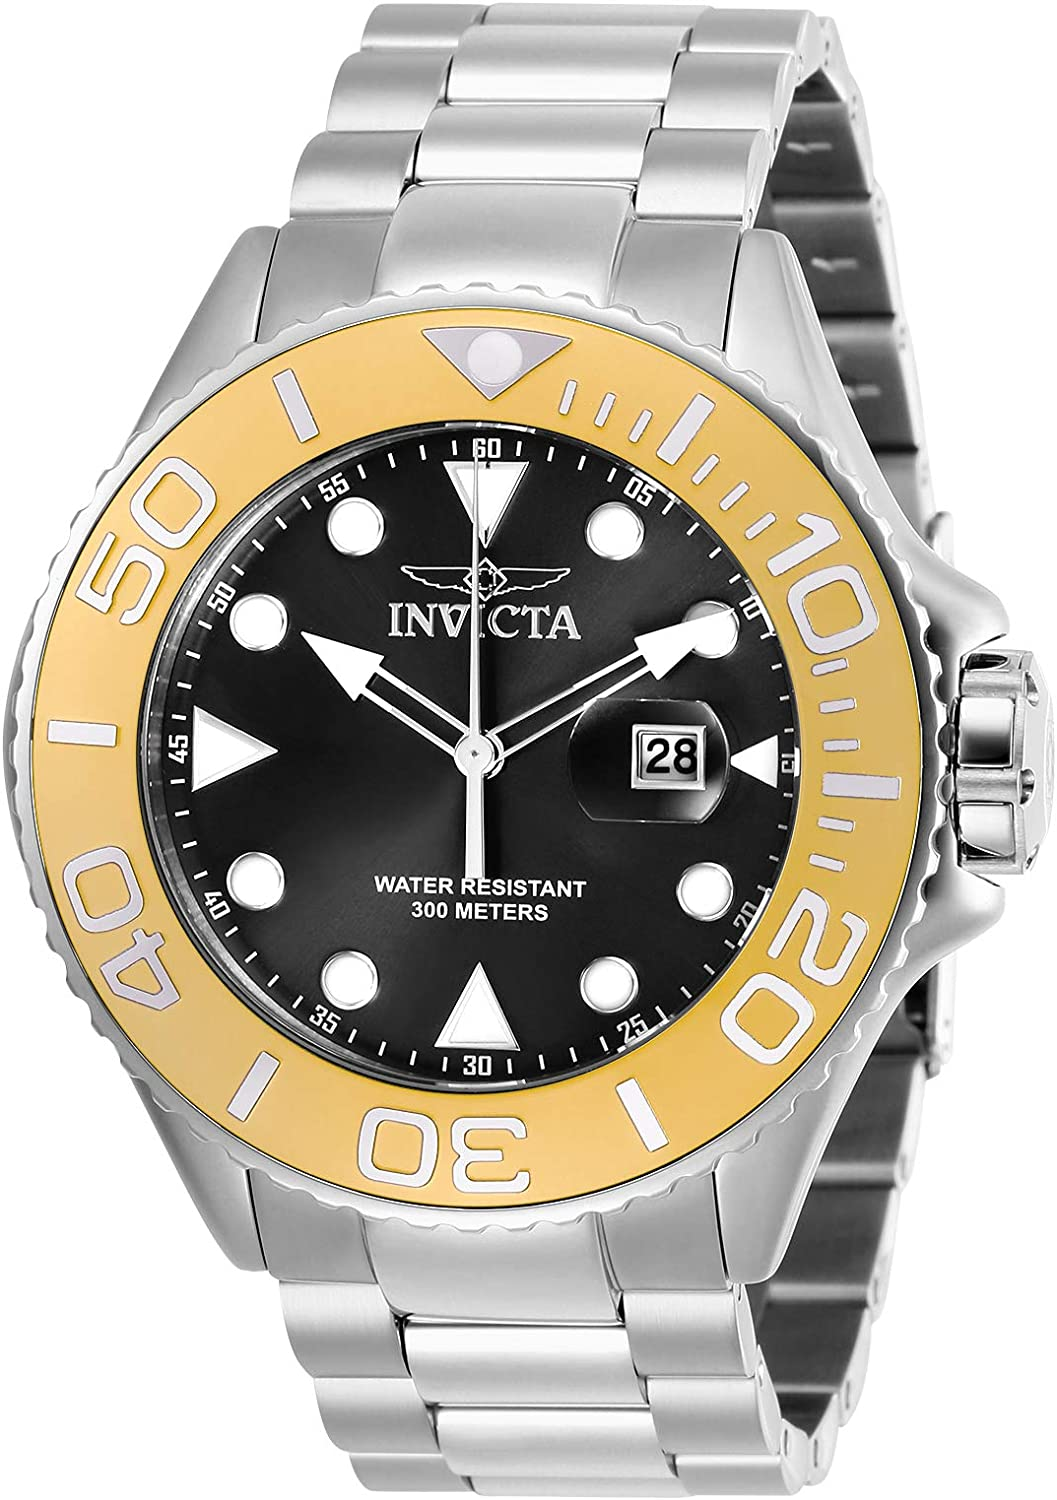 Invicta Men s Pro Diver Quartz Diving Watch with Stainless-Steel Strap, Silver, 24 Model 28767